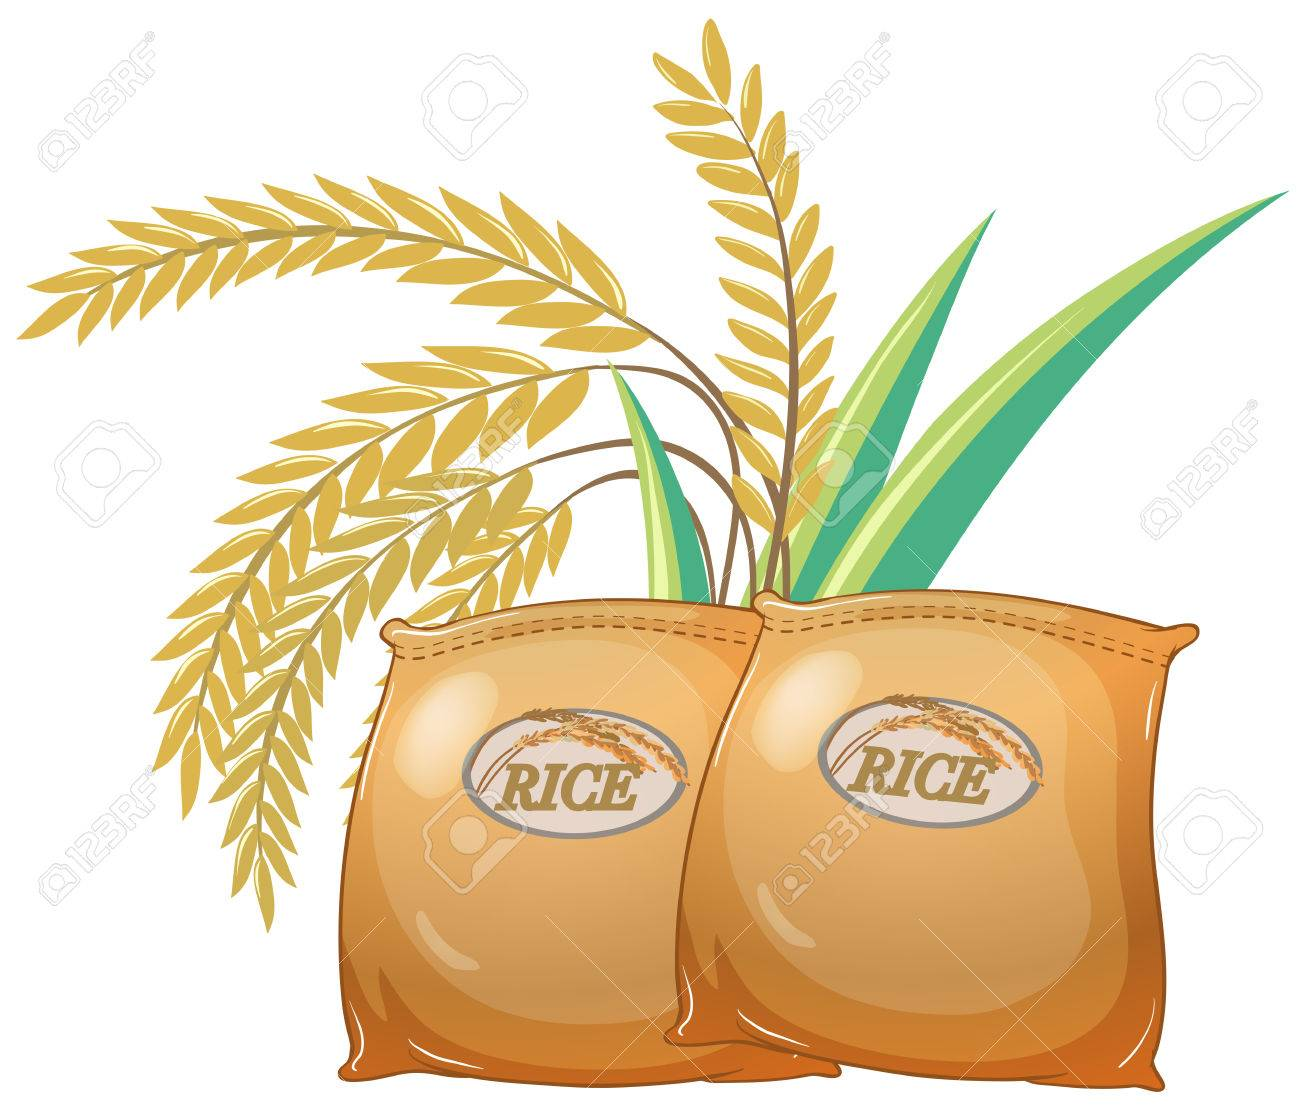 Two bags of rice illustration.